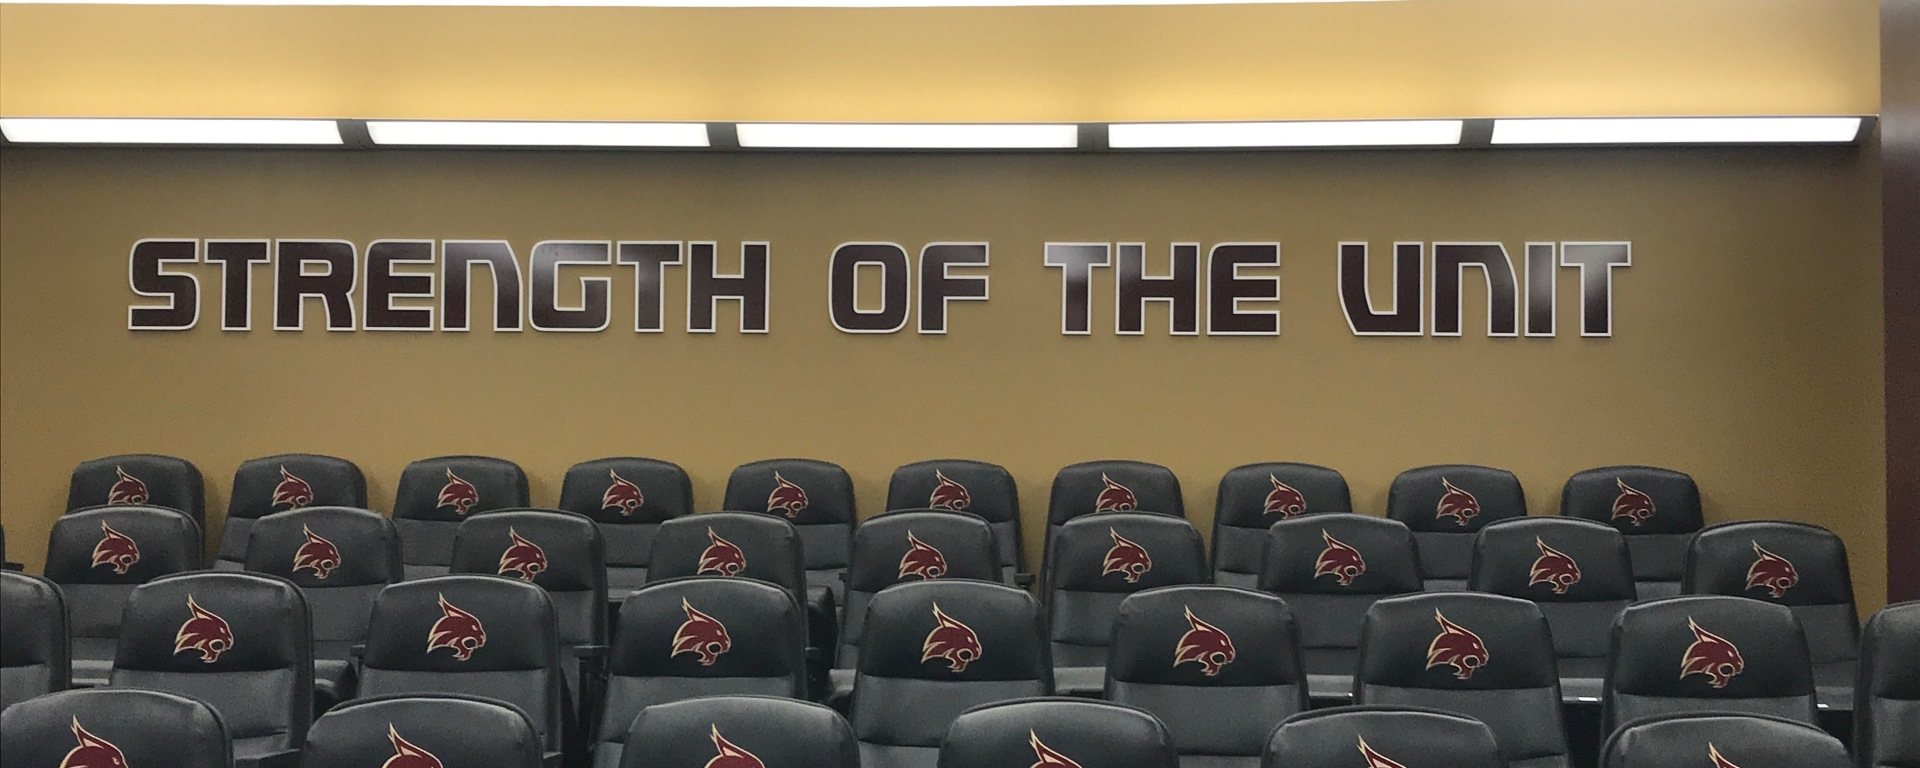 """Strength of the Unit"" is in bold maroon letters at the top of Texas State's press conference room."